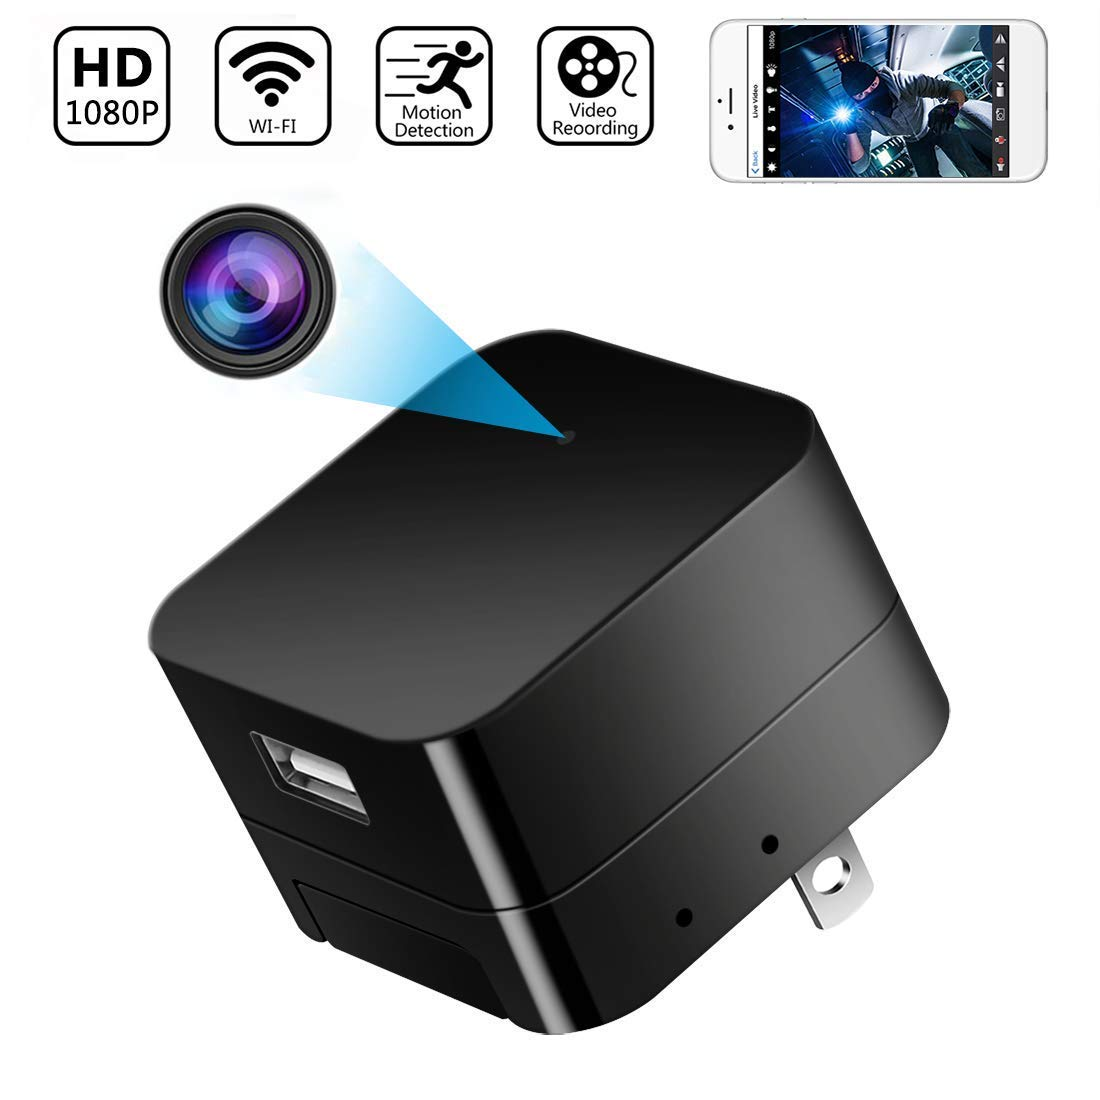 1080P Hidden Cameras for Home Hidden Spy Camera WiFi Spy Camera Mini Spy Camera USB Charger Camera Nanny Cam Camaras Espias Hidden Spy Cam Hidden Camera Charger